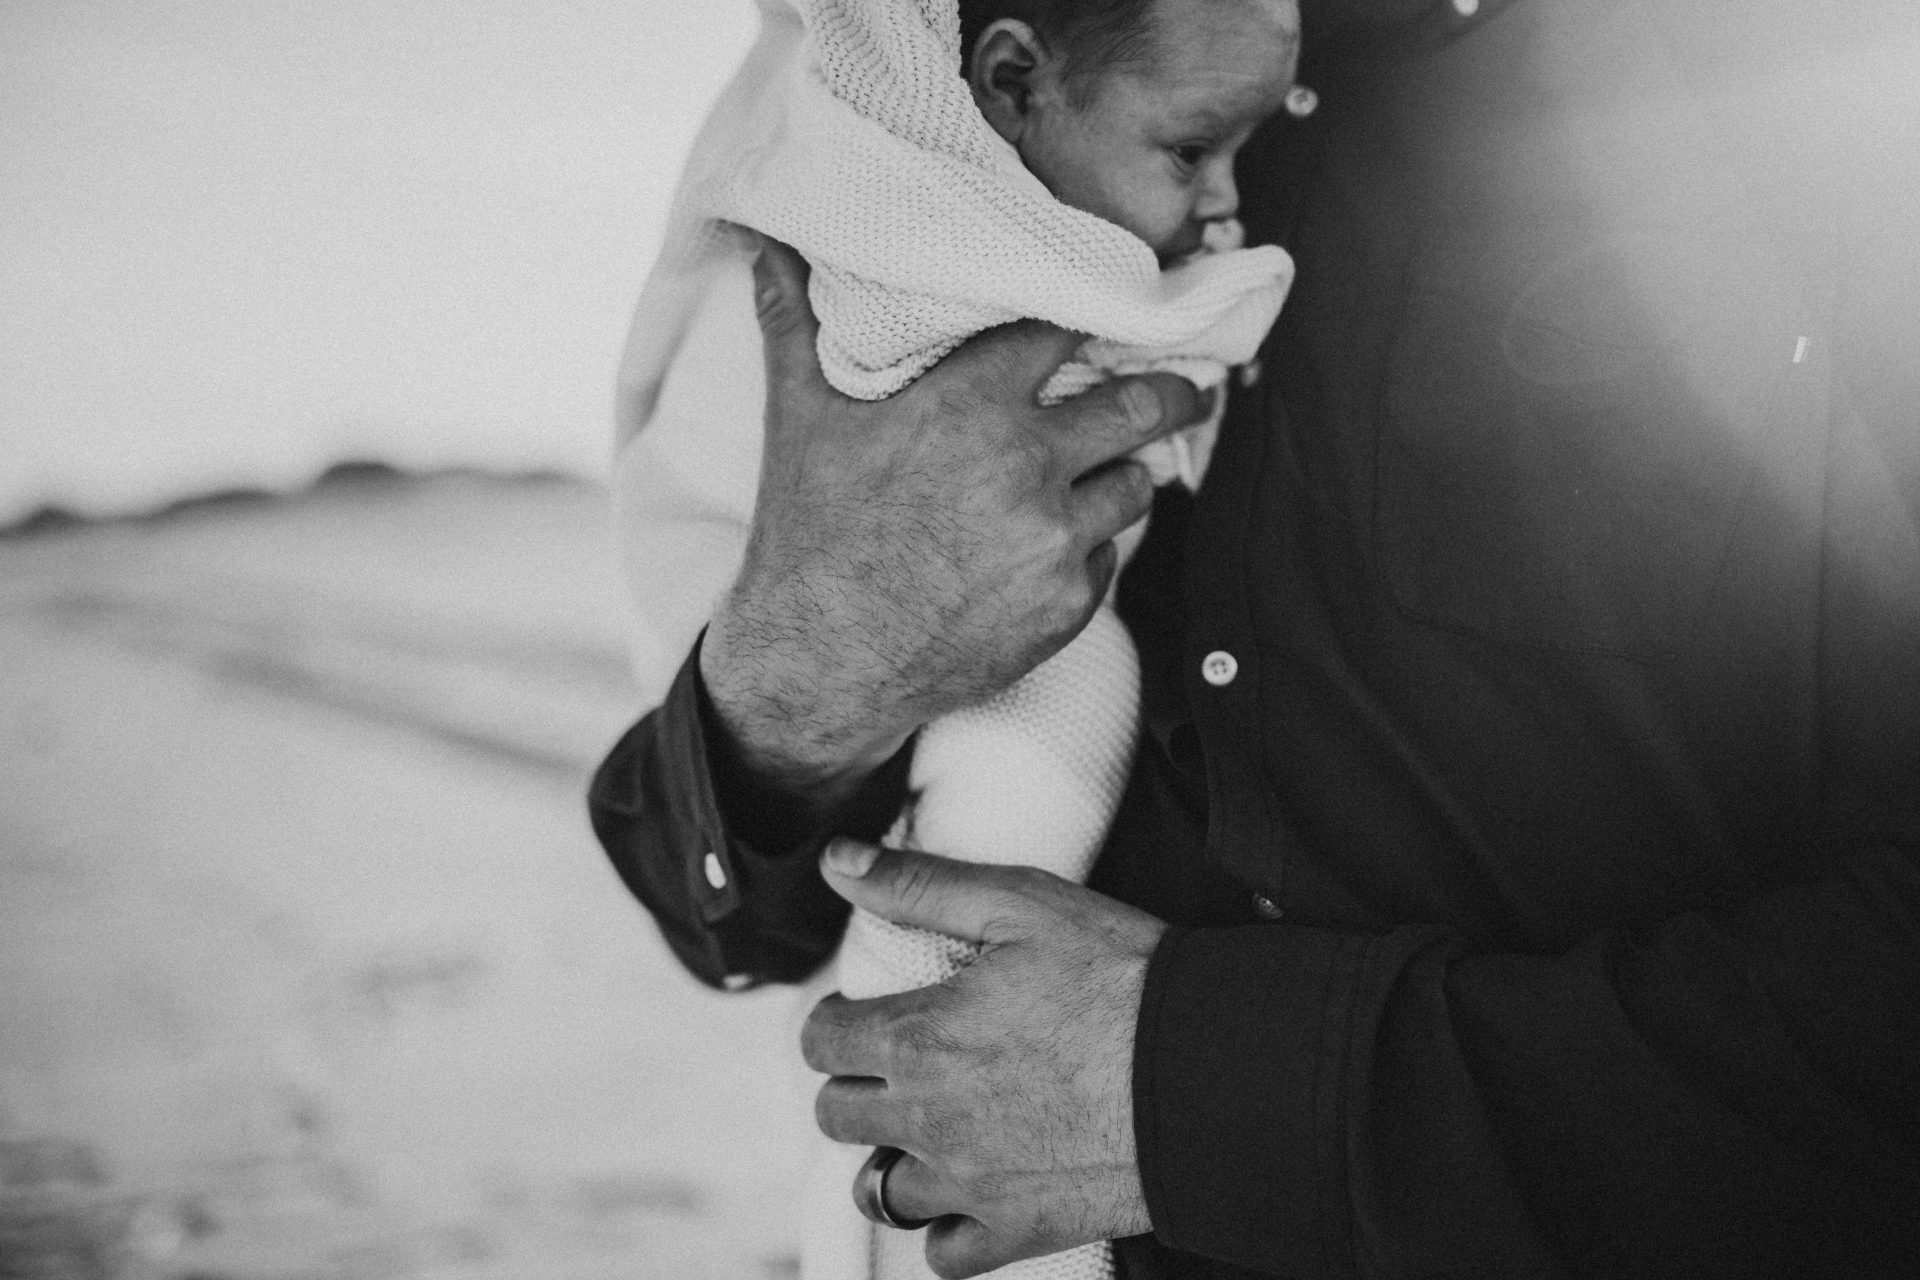 Black and white close up of man's hands cradling his baby girl